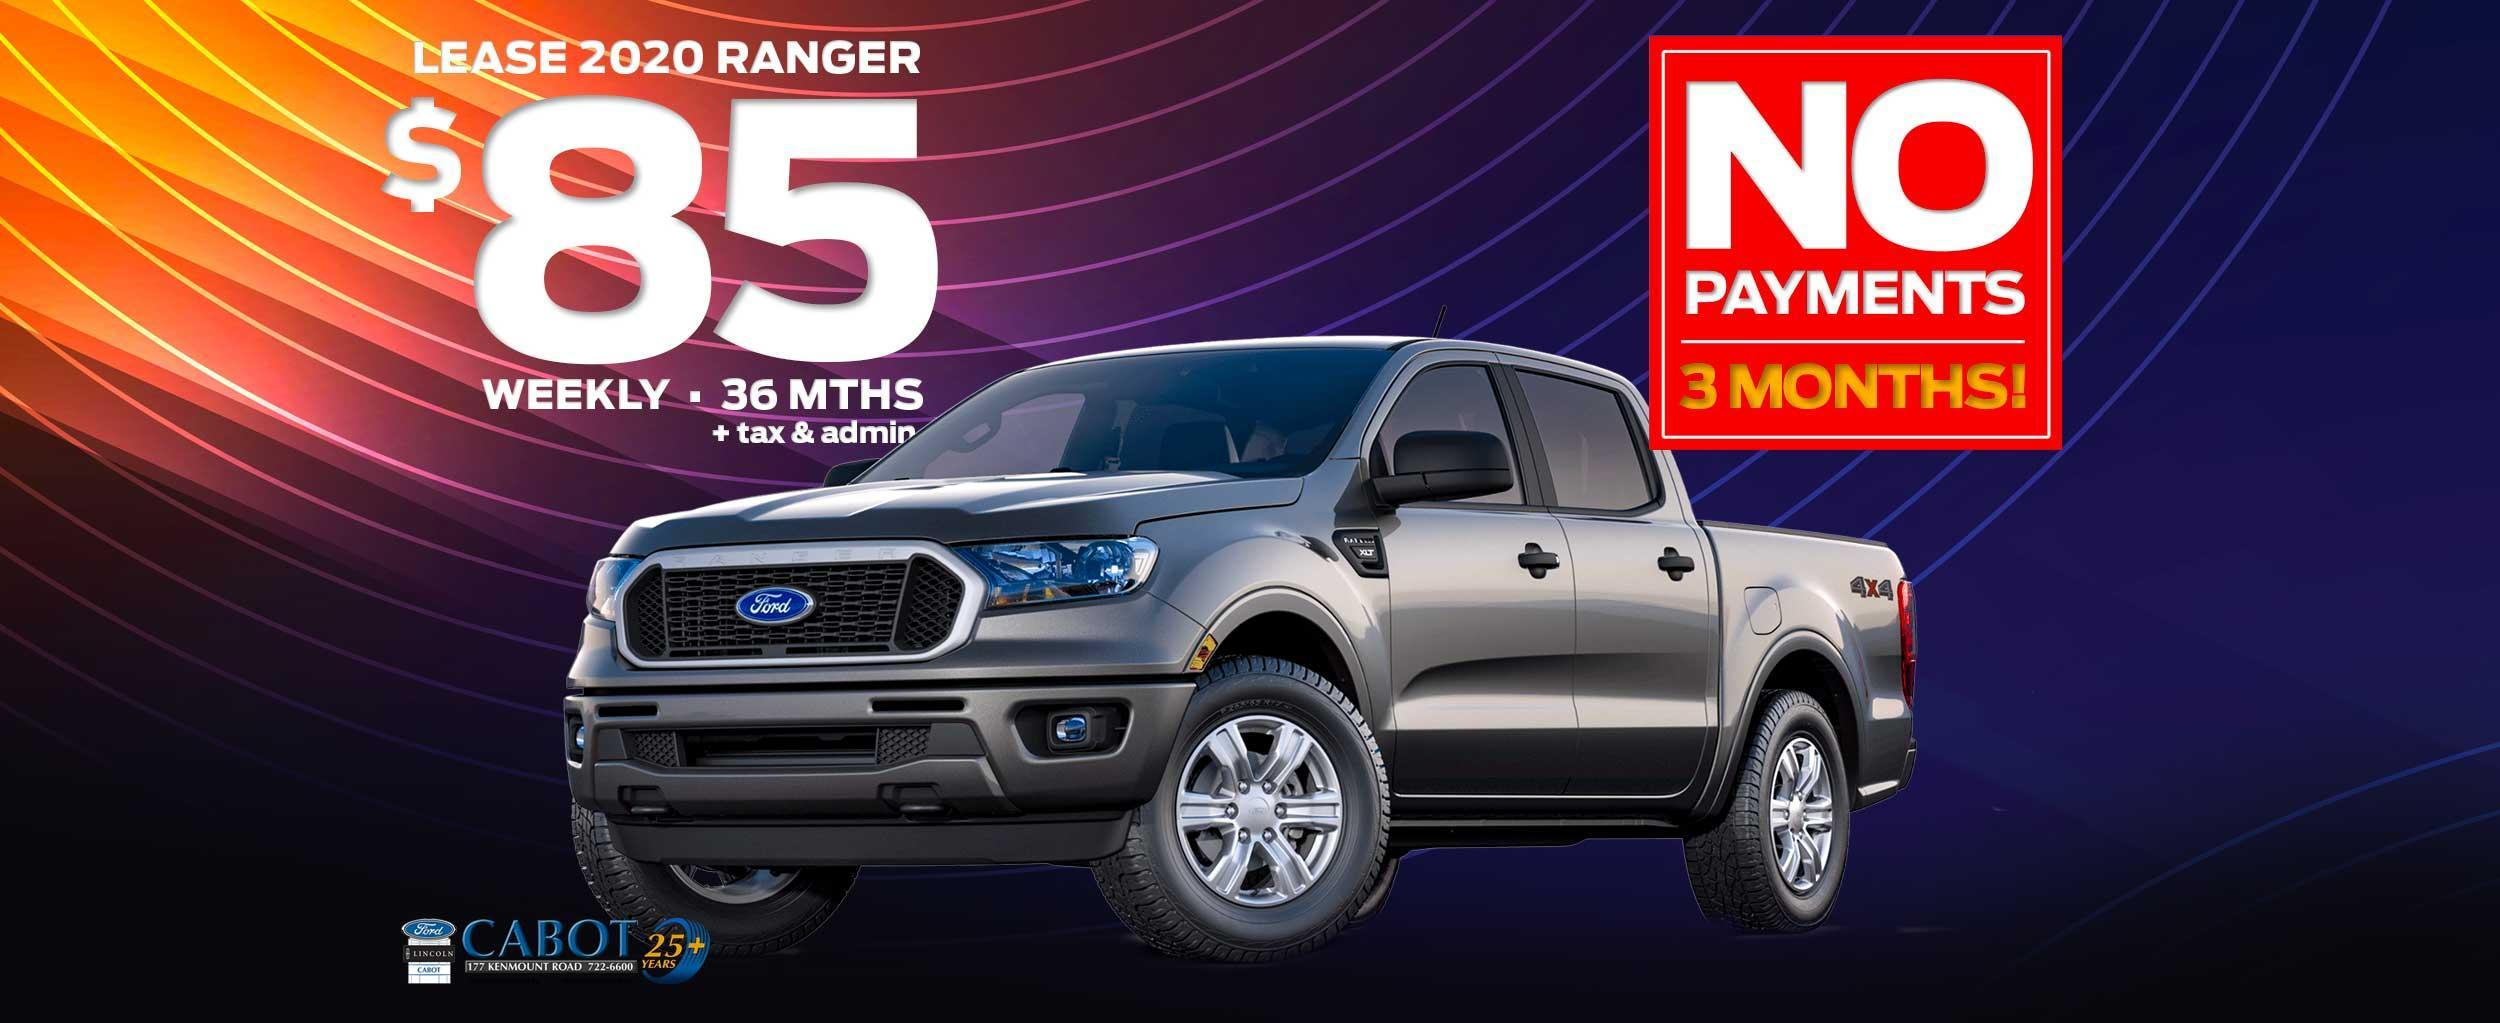 LEASE a 2020 FORD RANGER XLT SUPERCREW 4x4, for JUST $85 WEEKLY + tax and admin on a 36-month term and NO PAYMENTS FOR THREE MONTHS!